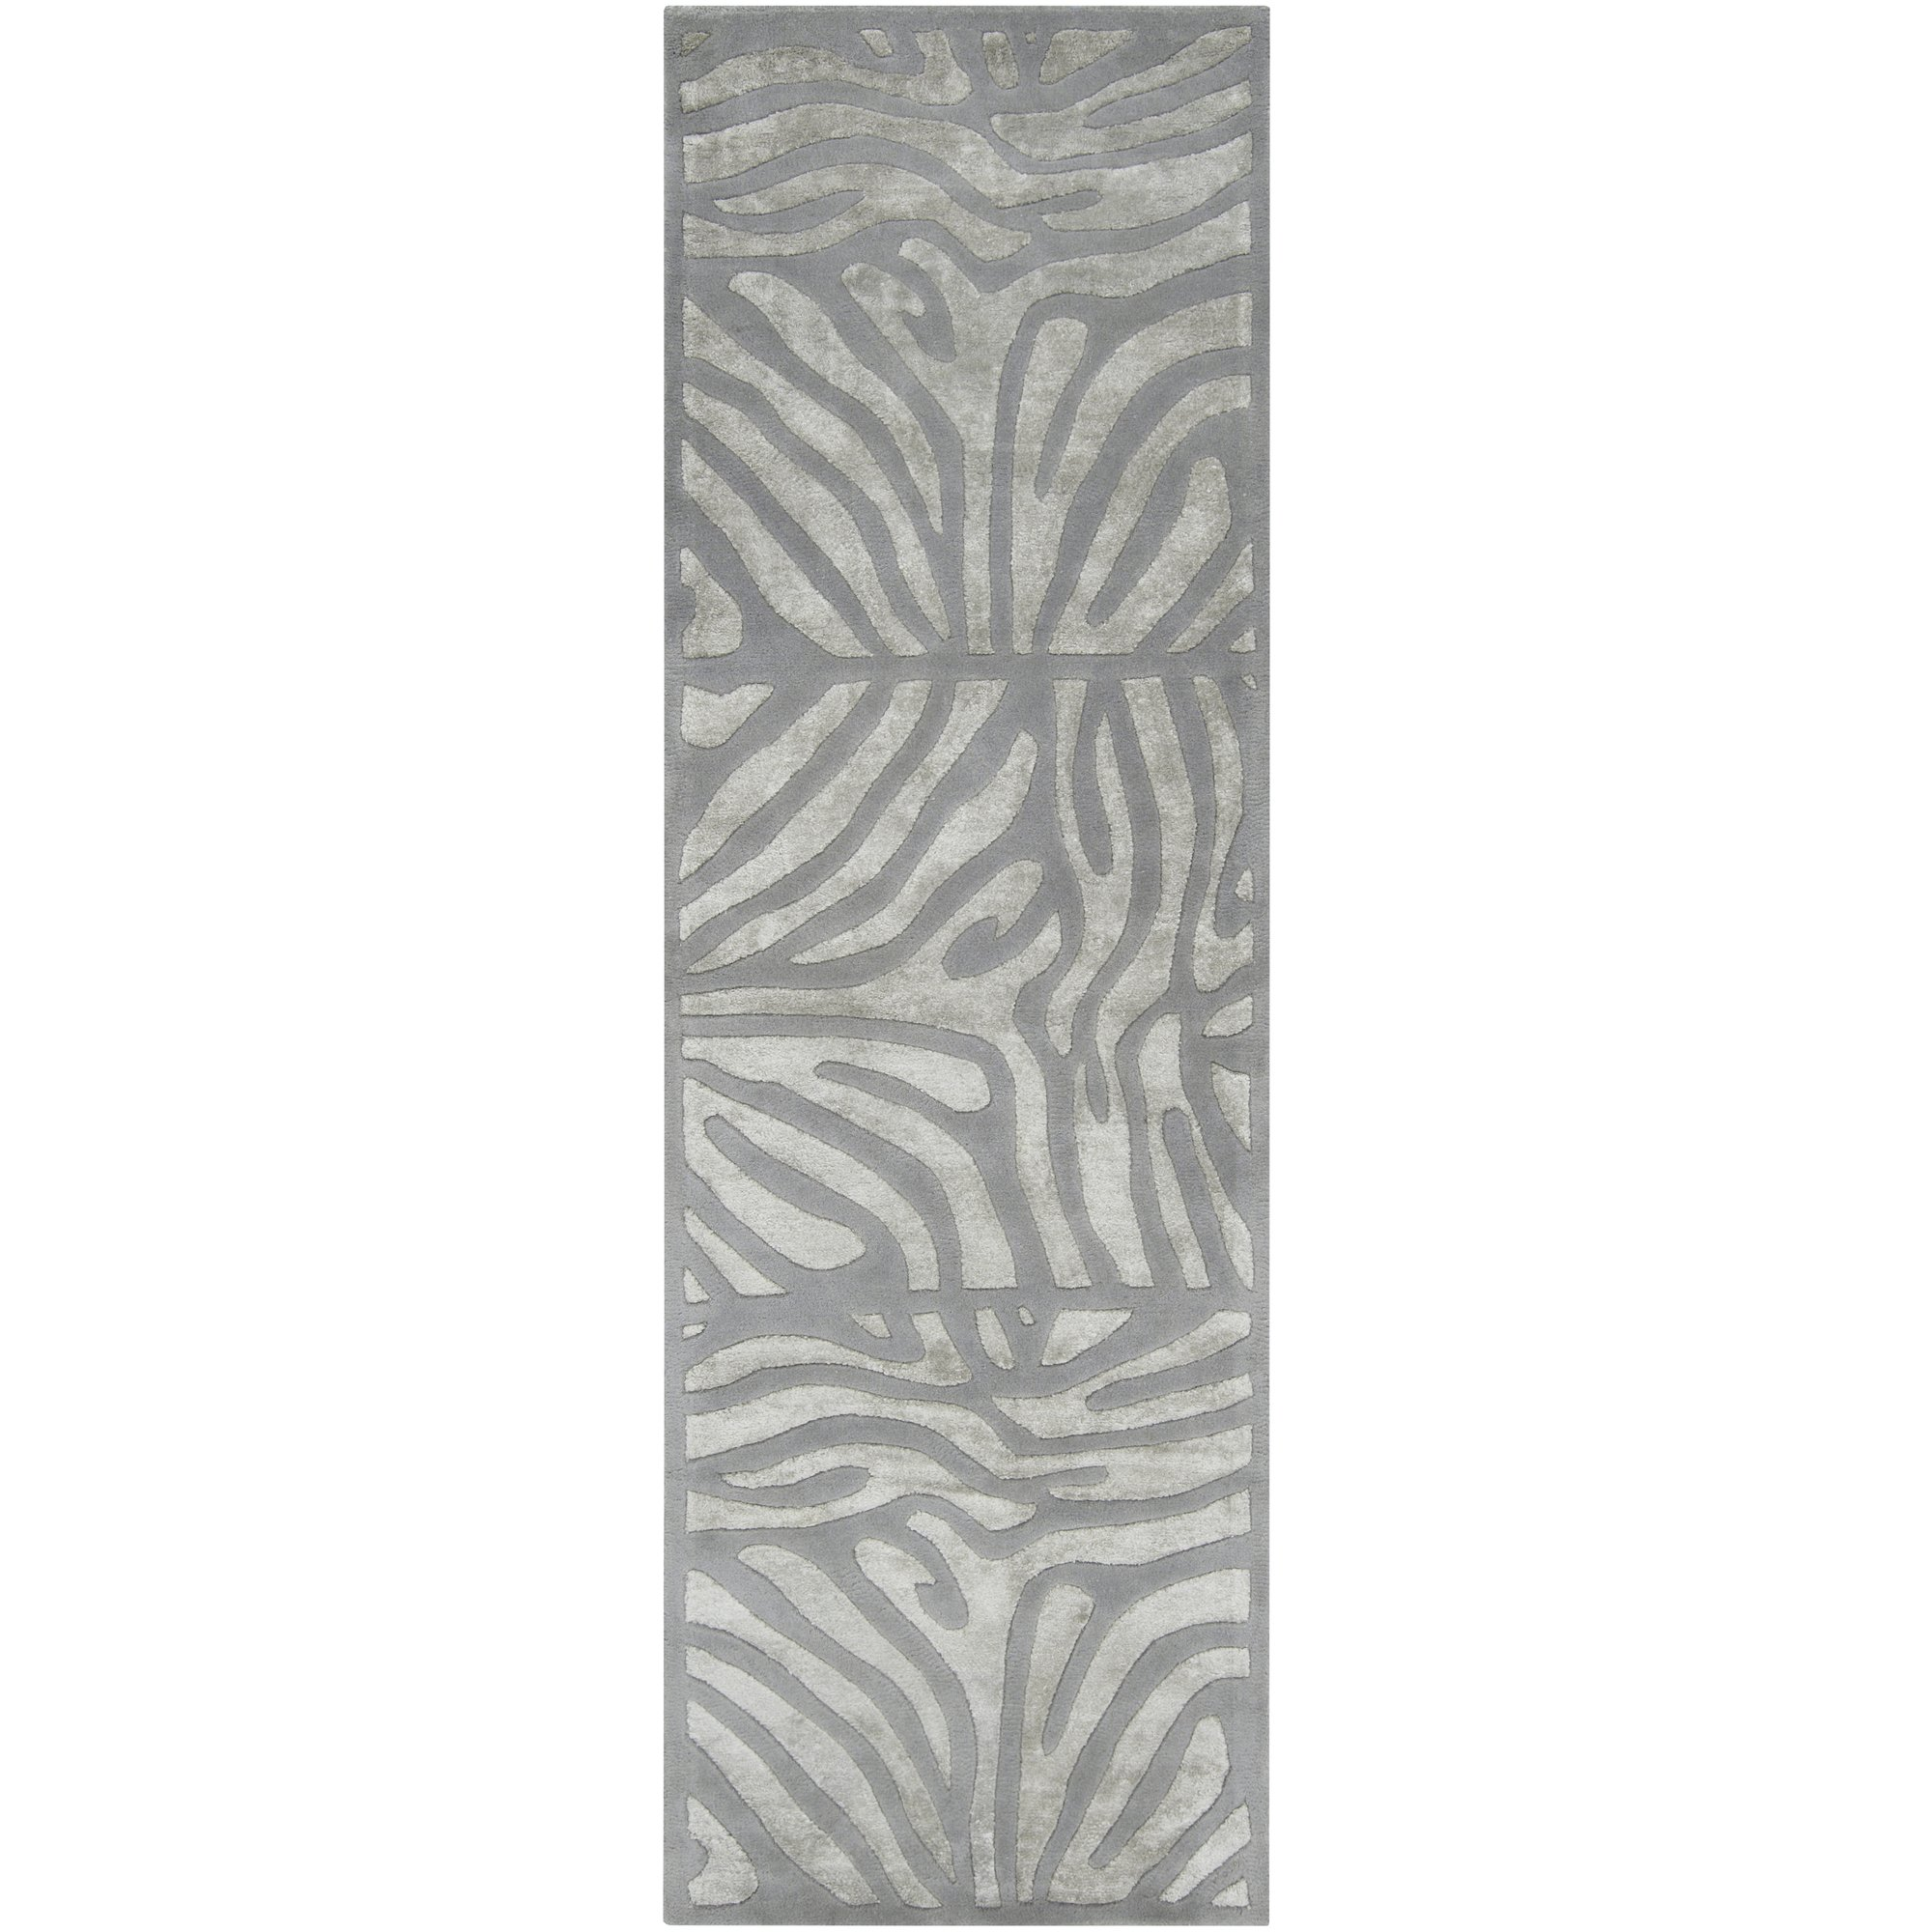 Candice Olson by Surya Modern Classics CAN-1935 Contemporary Hand Tufted 100% New Zealand Wool Silvered Gray 2'6'' x 8' Animal Runner